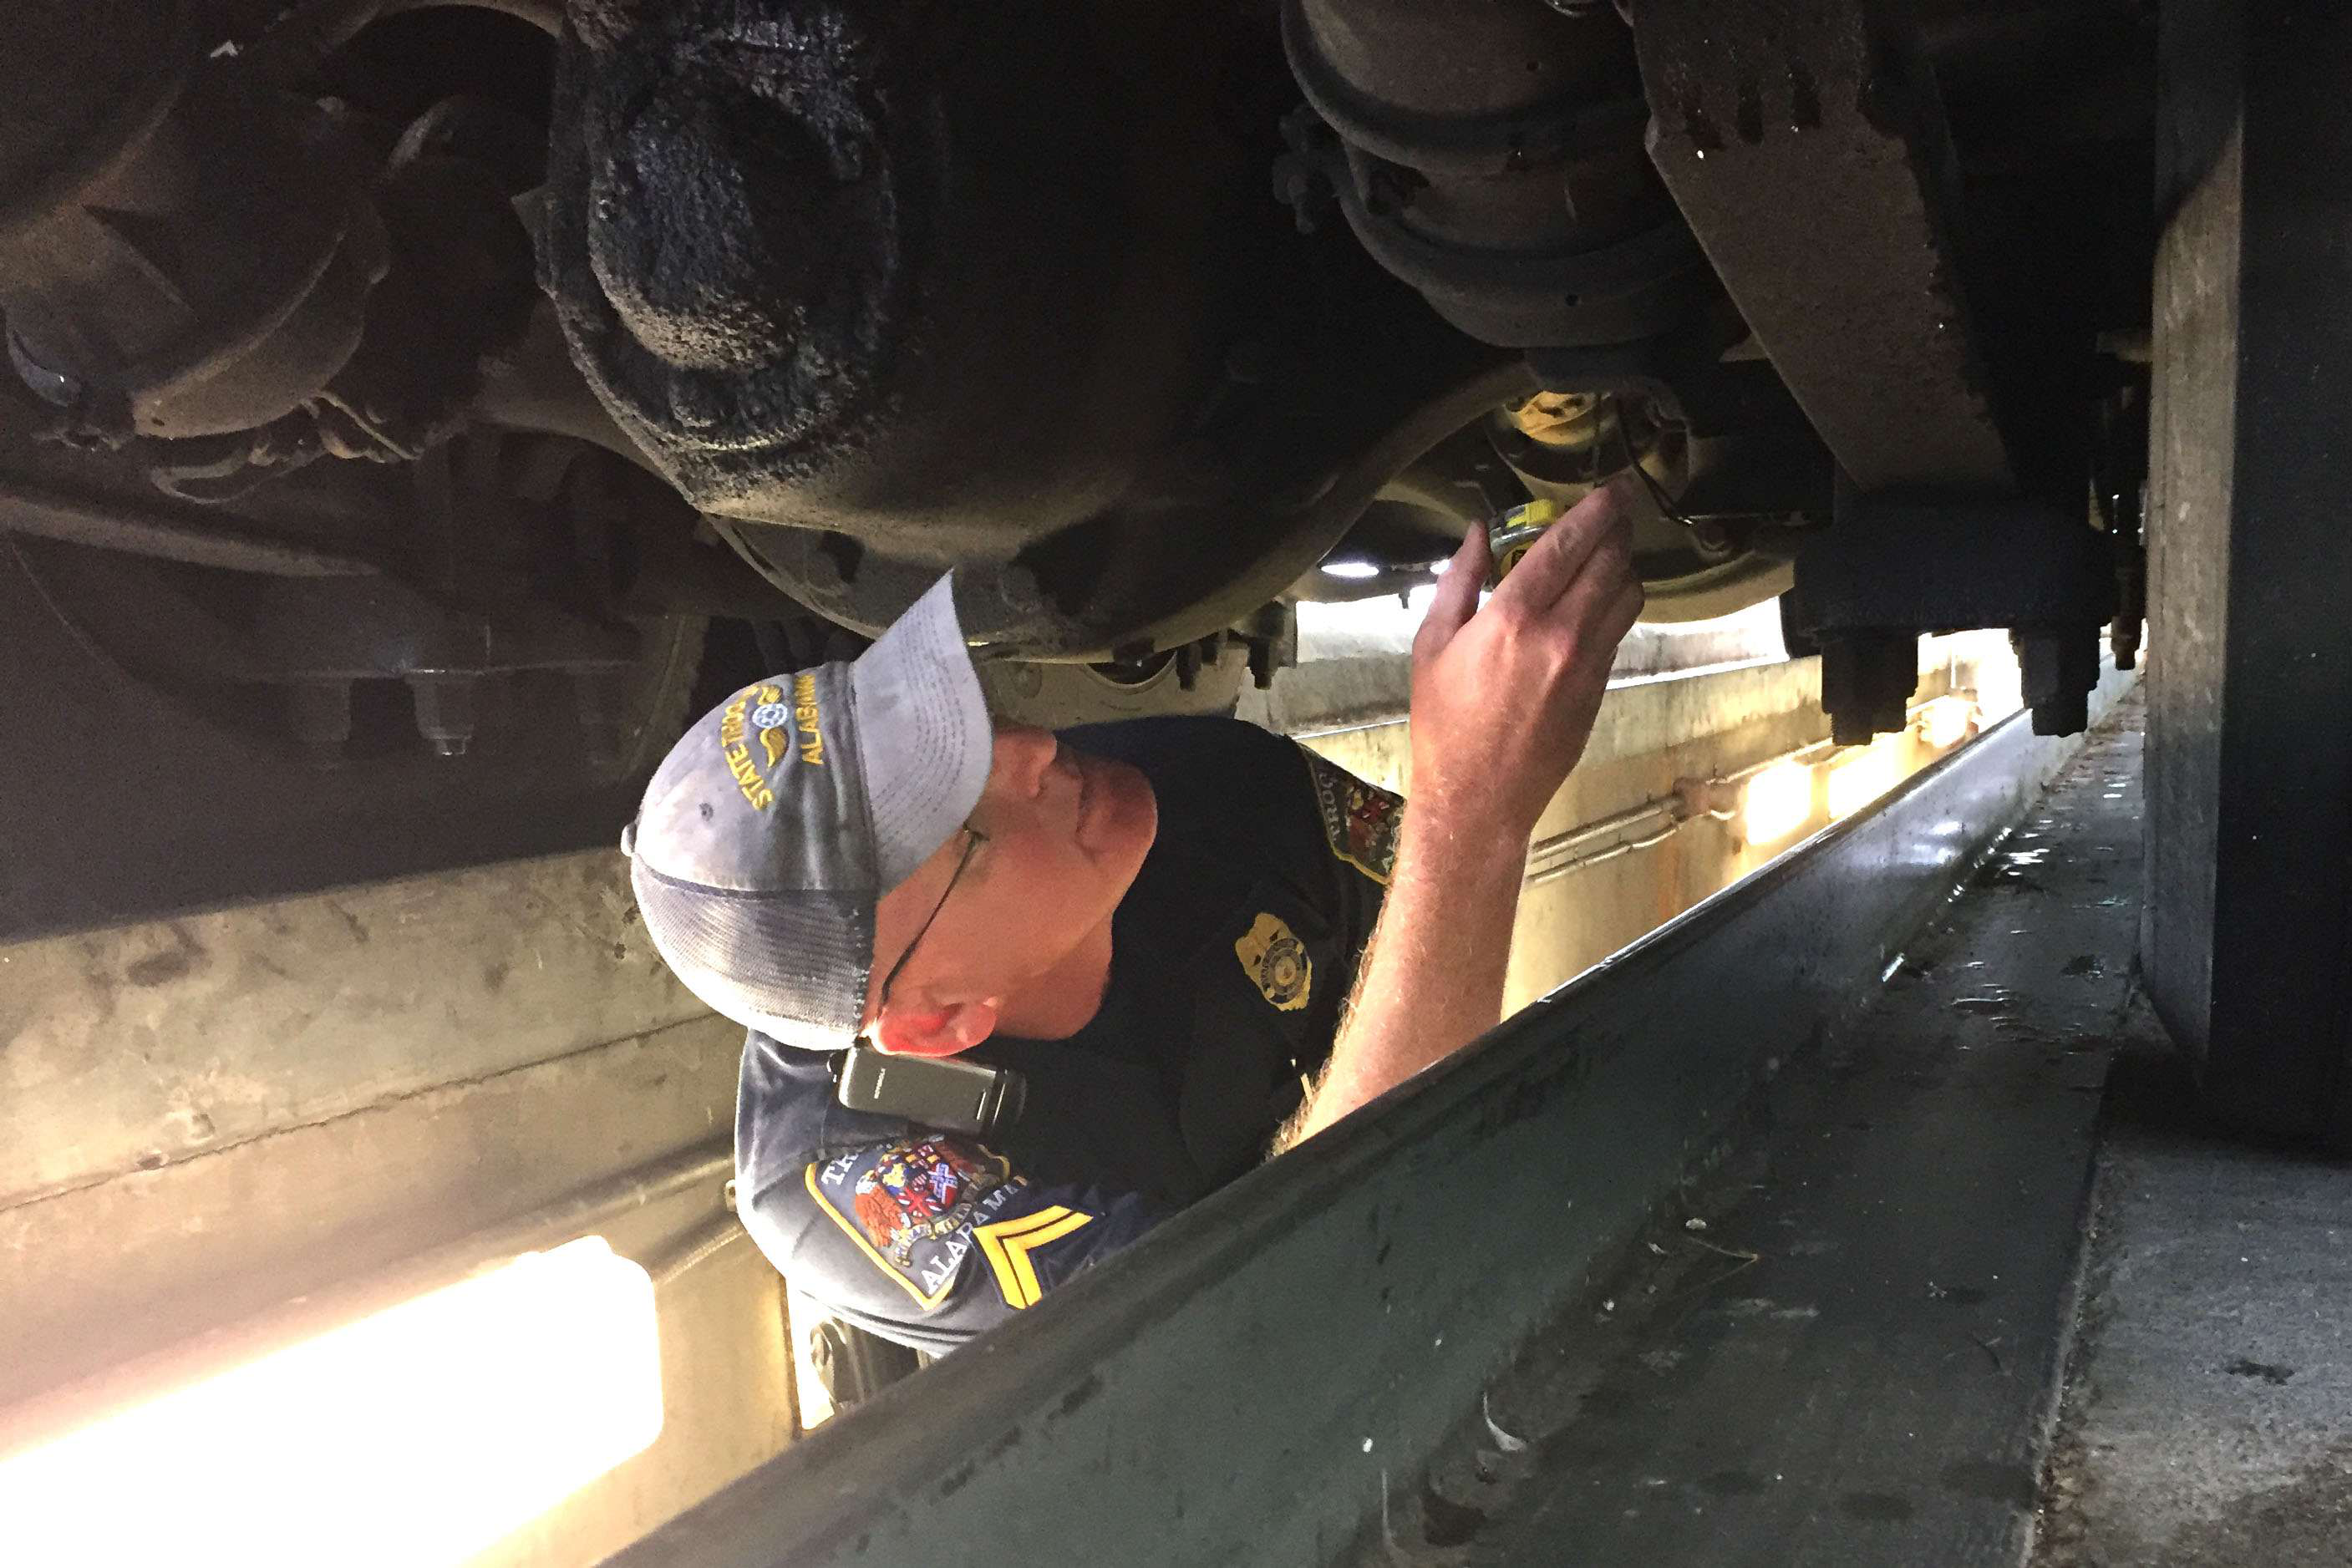 Inspector Chris McNatt checks a chassis at Alabama's weigh station near the Georgia state line Tuesday, the opening day of International Roadcheck.